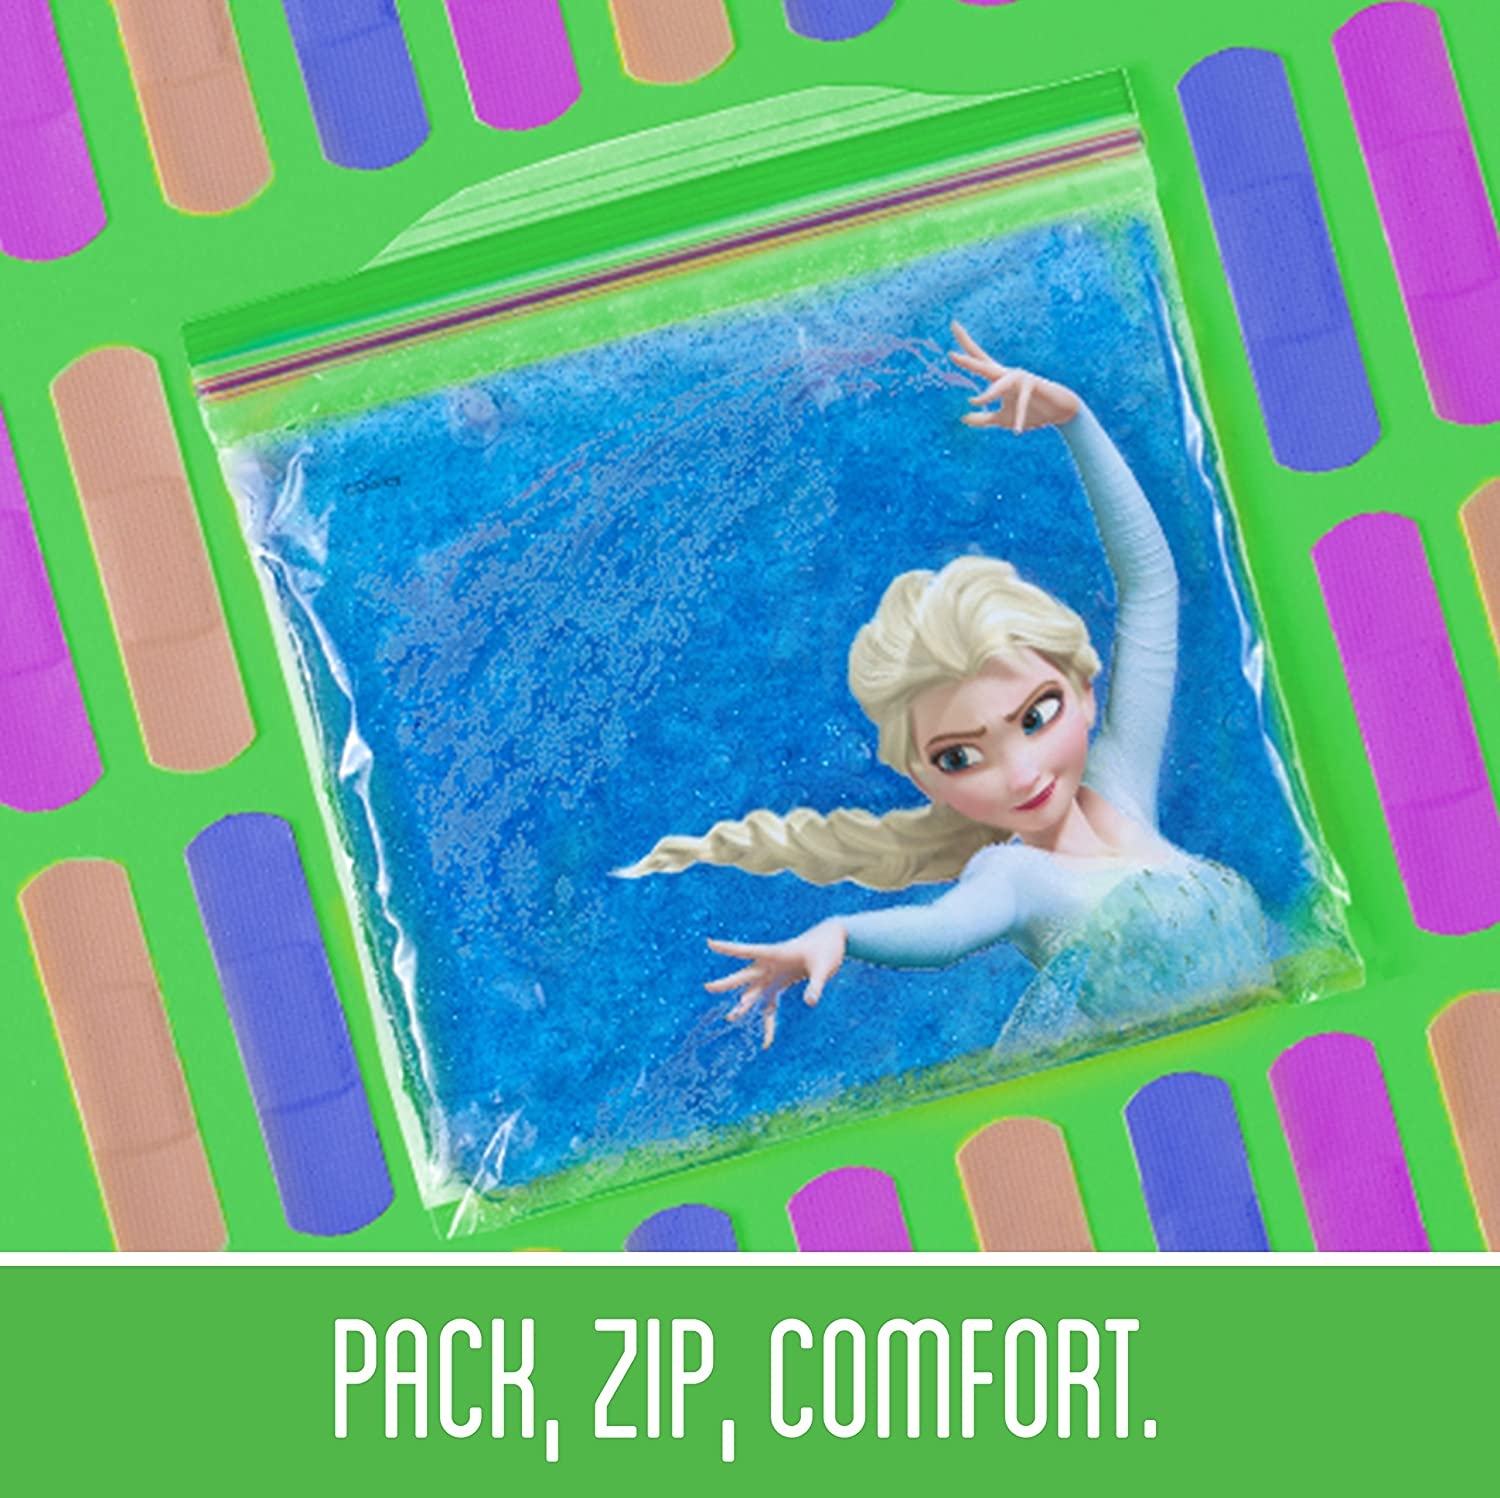 Amazon.com: Ziploc Brand Sandwich Bags featuring Disney Frozen Designs, 66 ct: Health & Personal Care